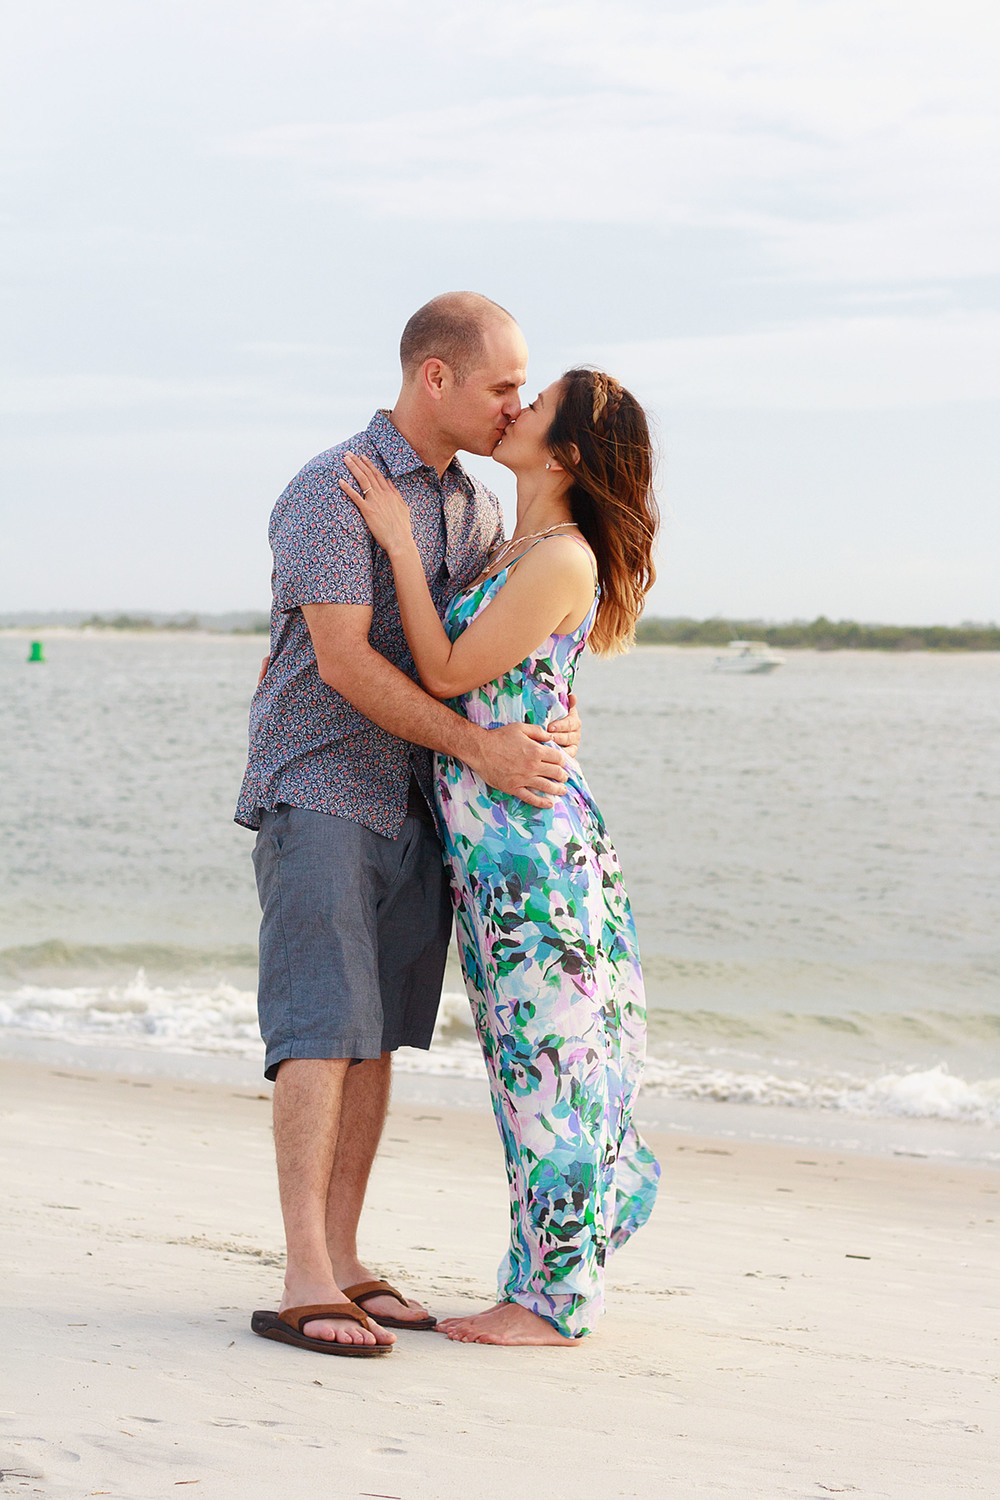 Airlie_Gardens_Engagement_Photography_Brian_&_Amy_62.jpg